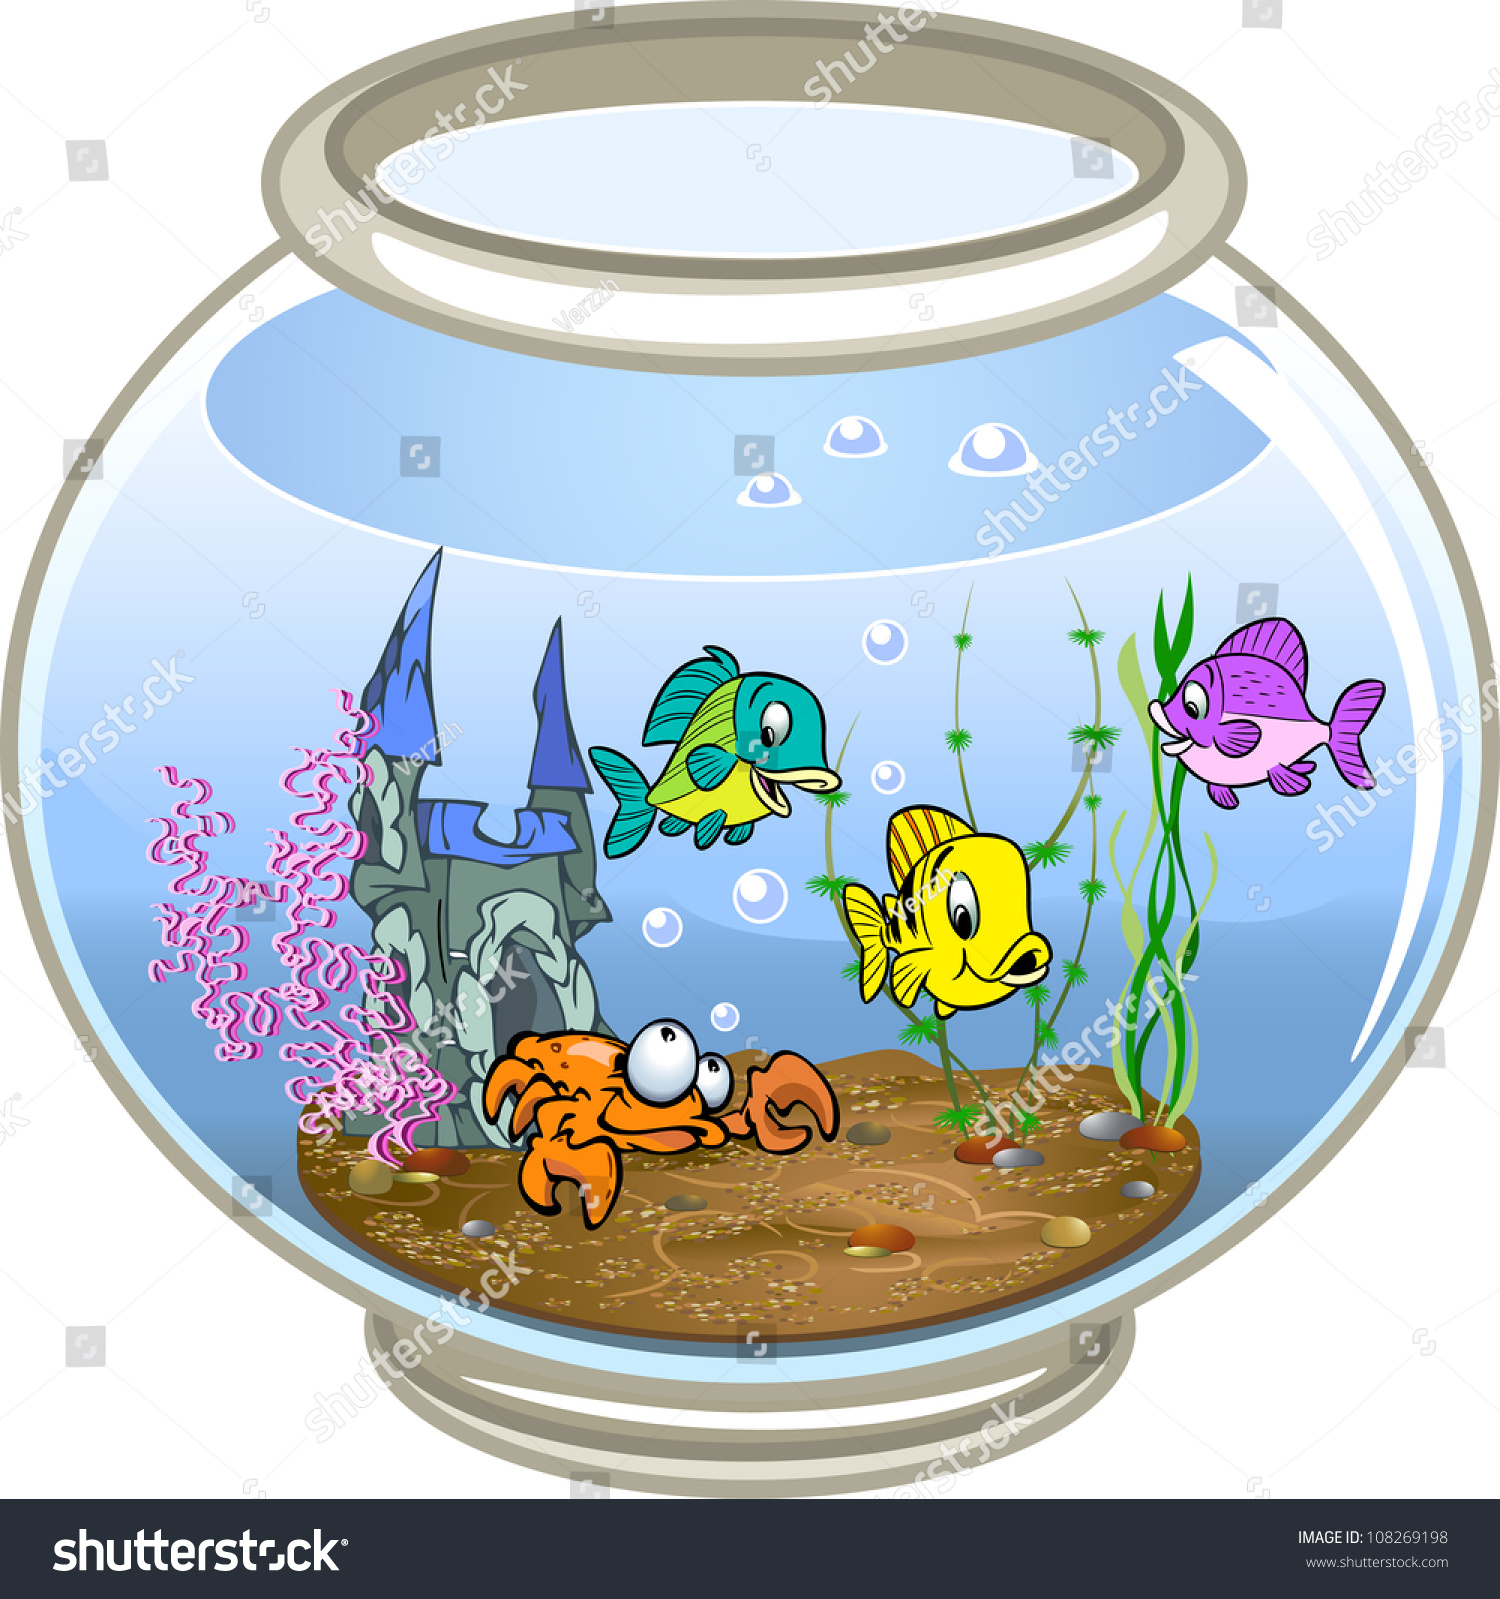 Fish bowl decorations clipart for Fish bowl pictures